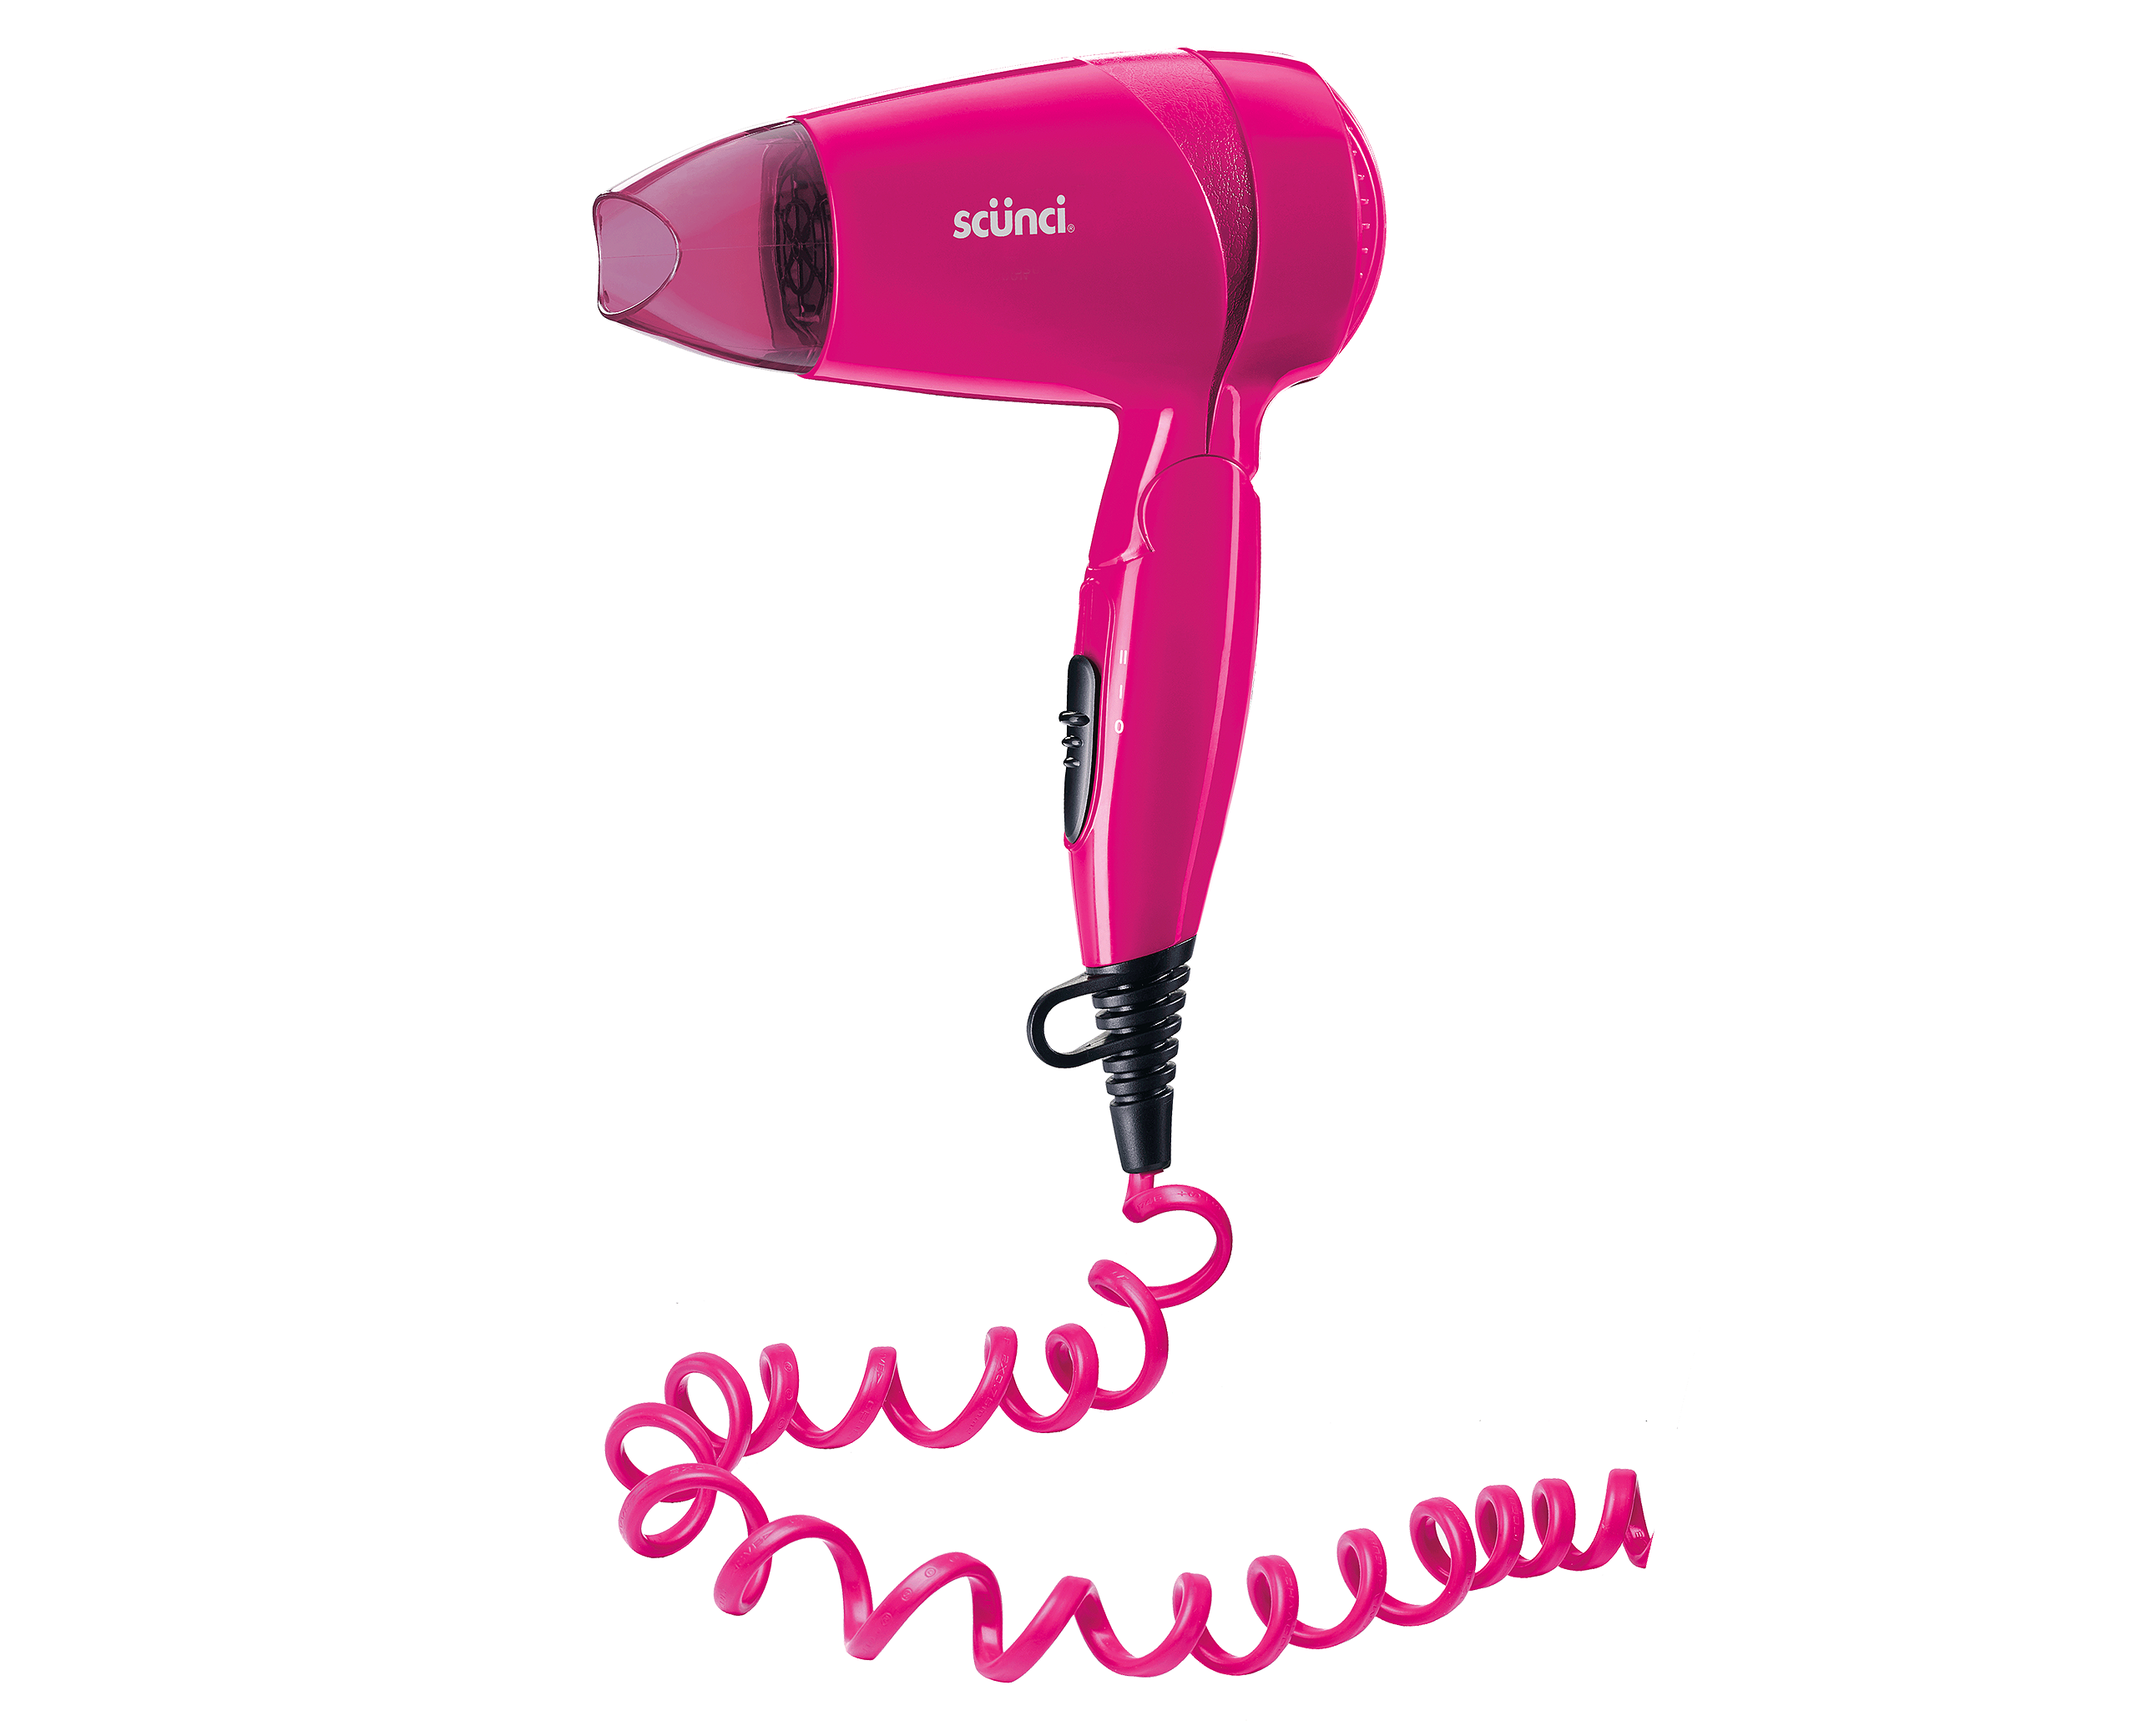 Curly Cord Compact Hair Dryer